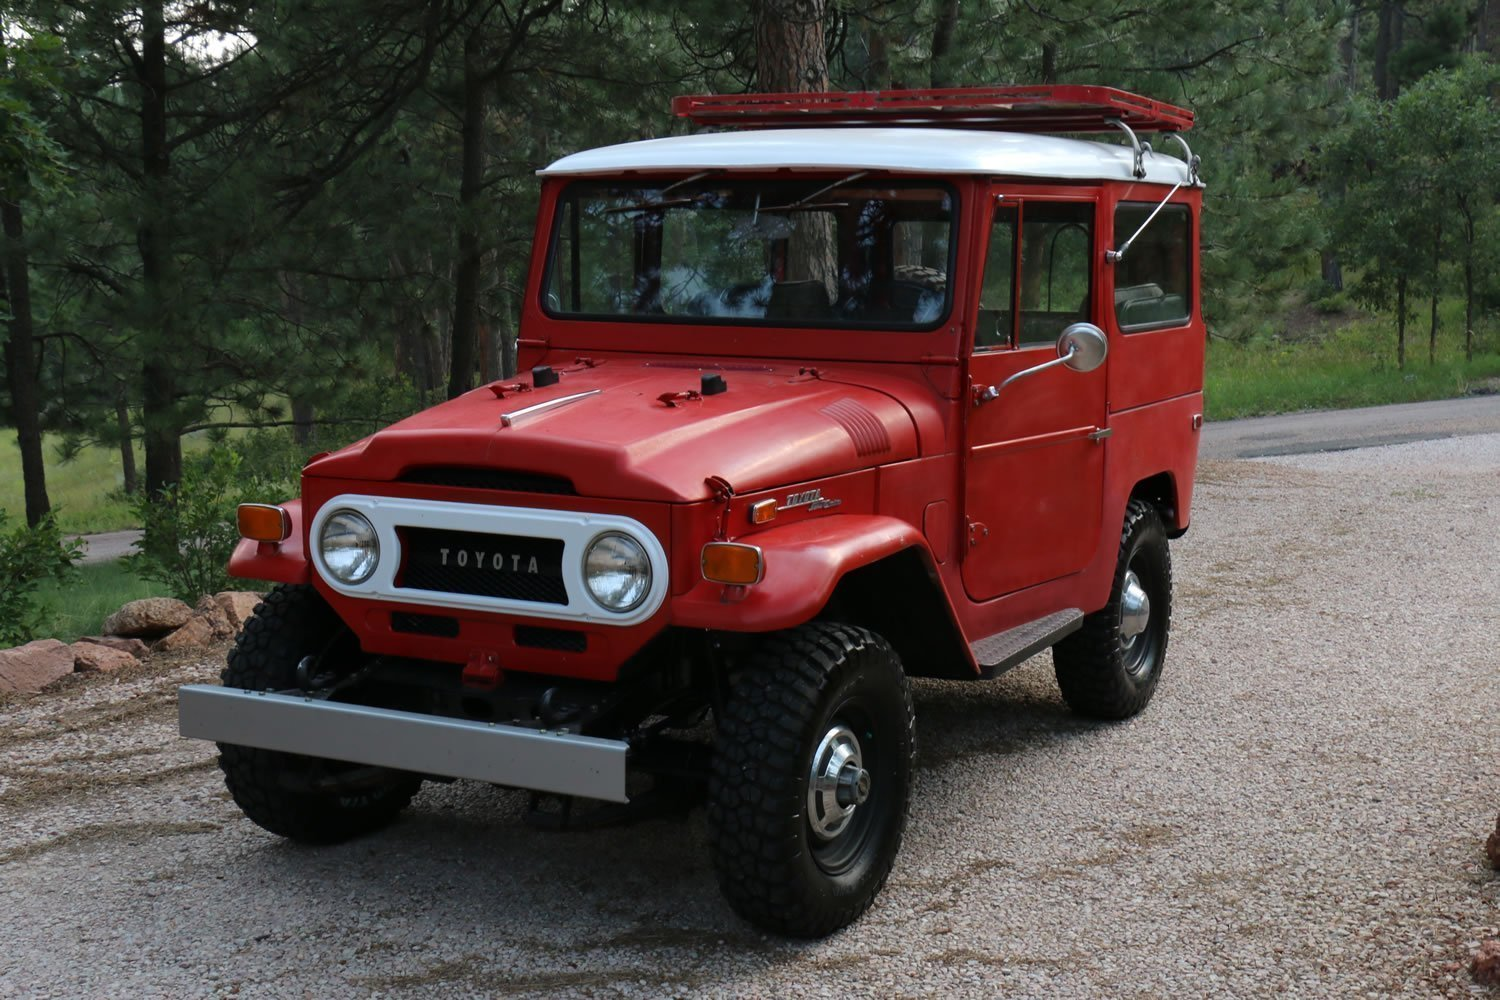 for sale 1971 toyota land cruiser fj40 red 79k miles red line land cruisers. Black Bedroom Furniture Sets. Home Design Ideas